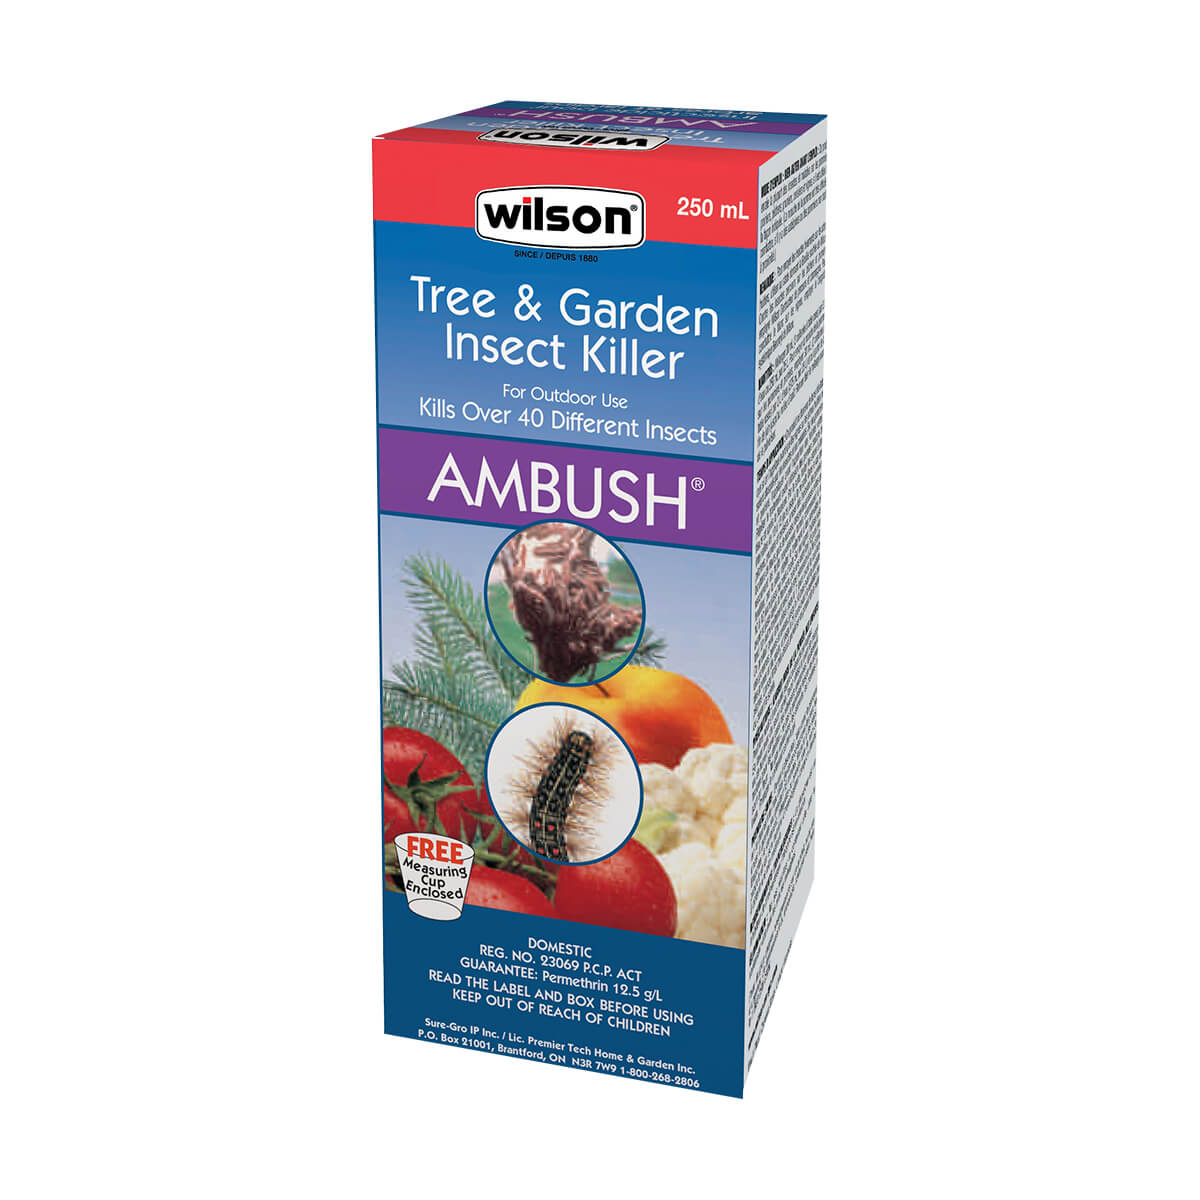 AMBUSH Tree & Garden Insect Killer - 250 ml